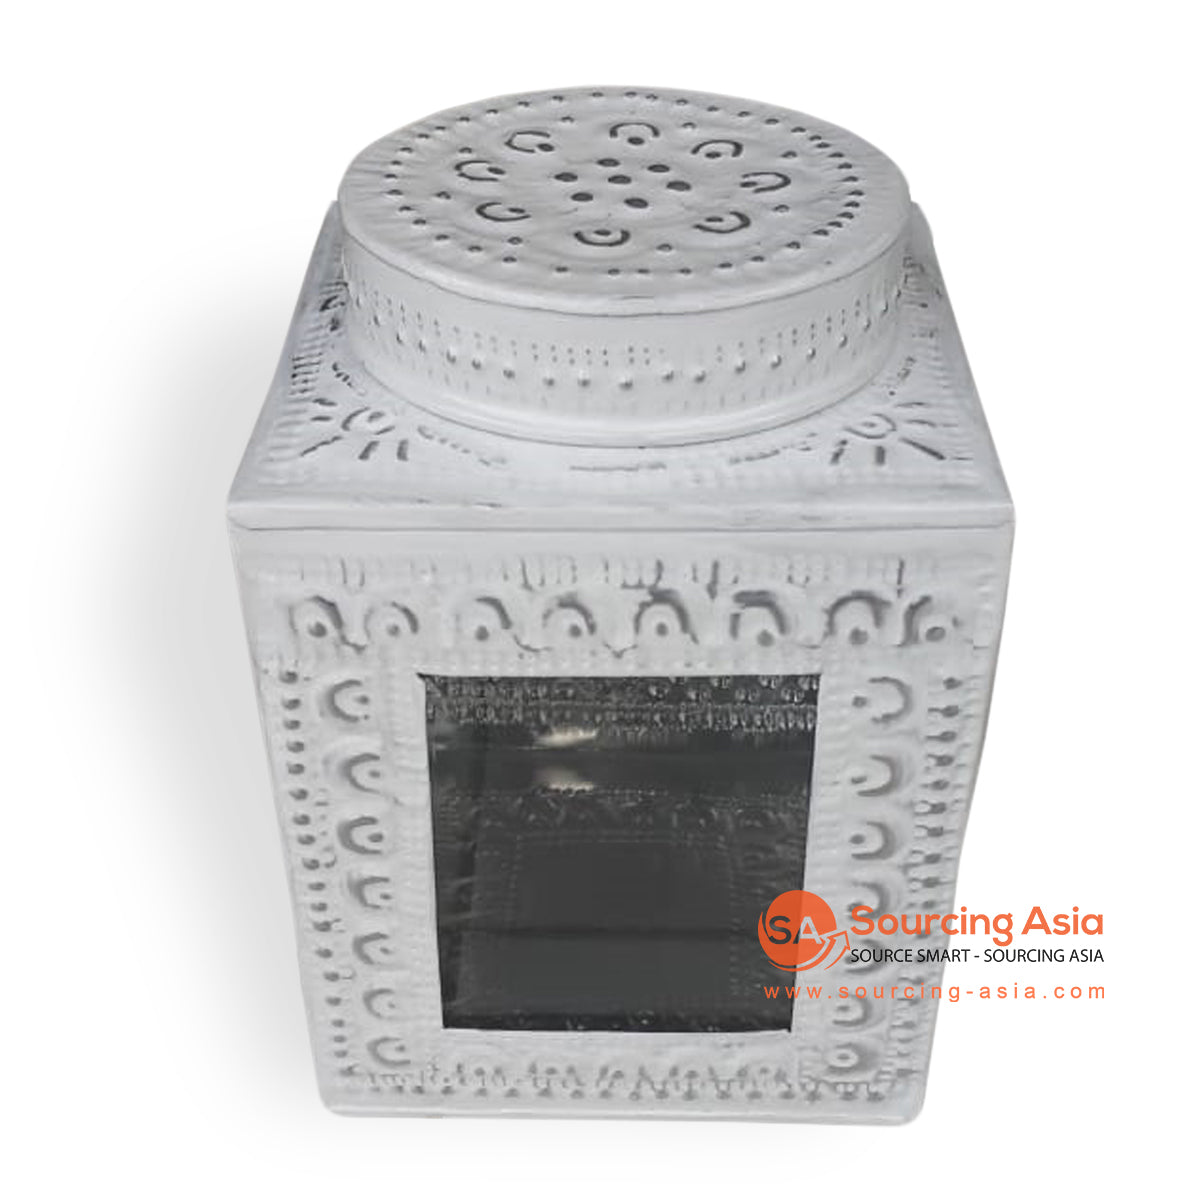 MTRA004-1 METAL BOX COLOR WHITE